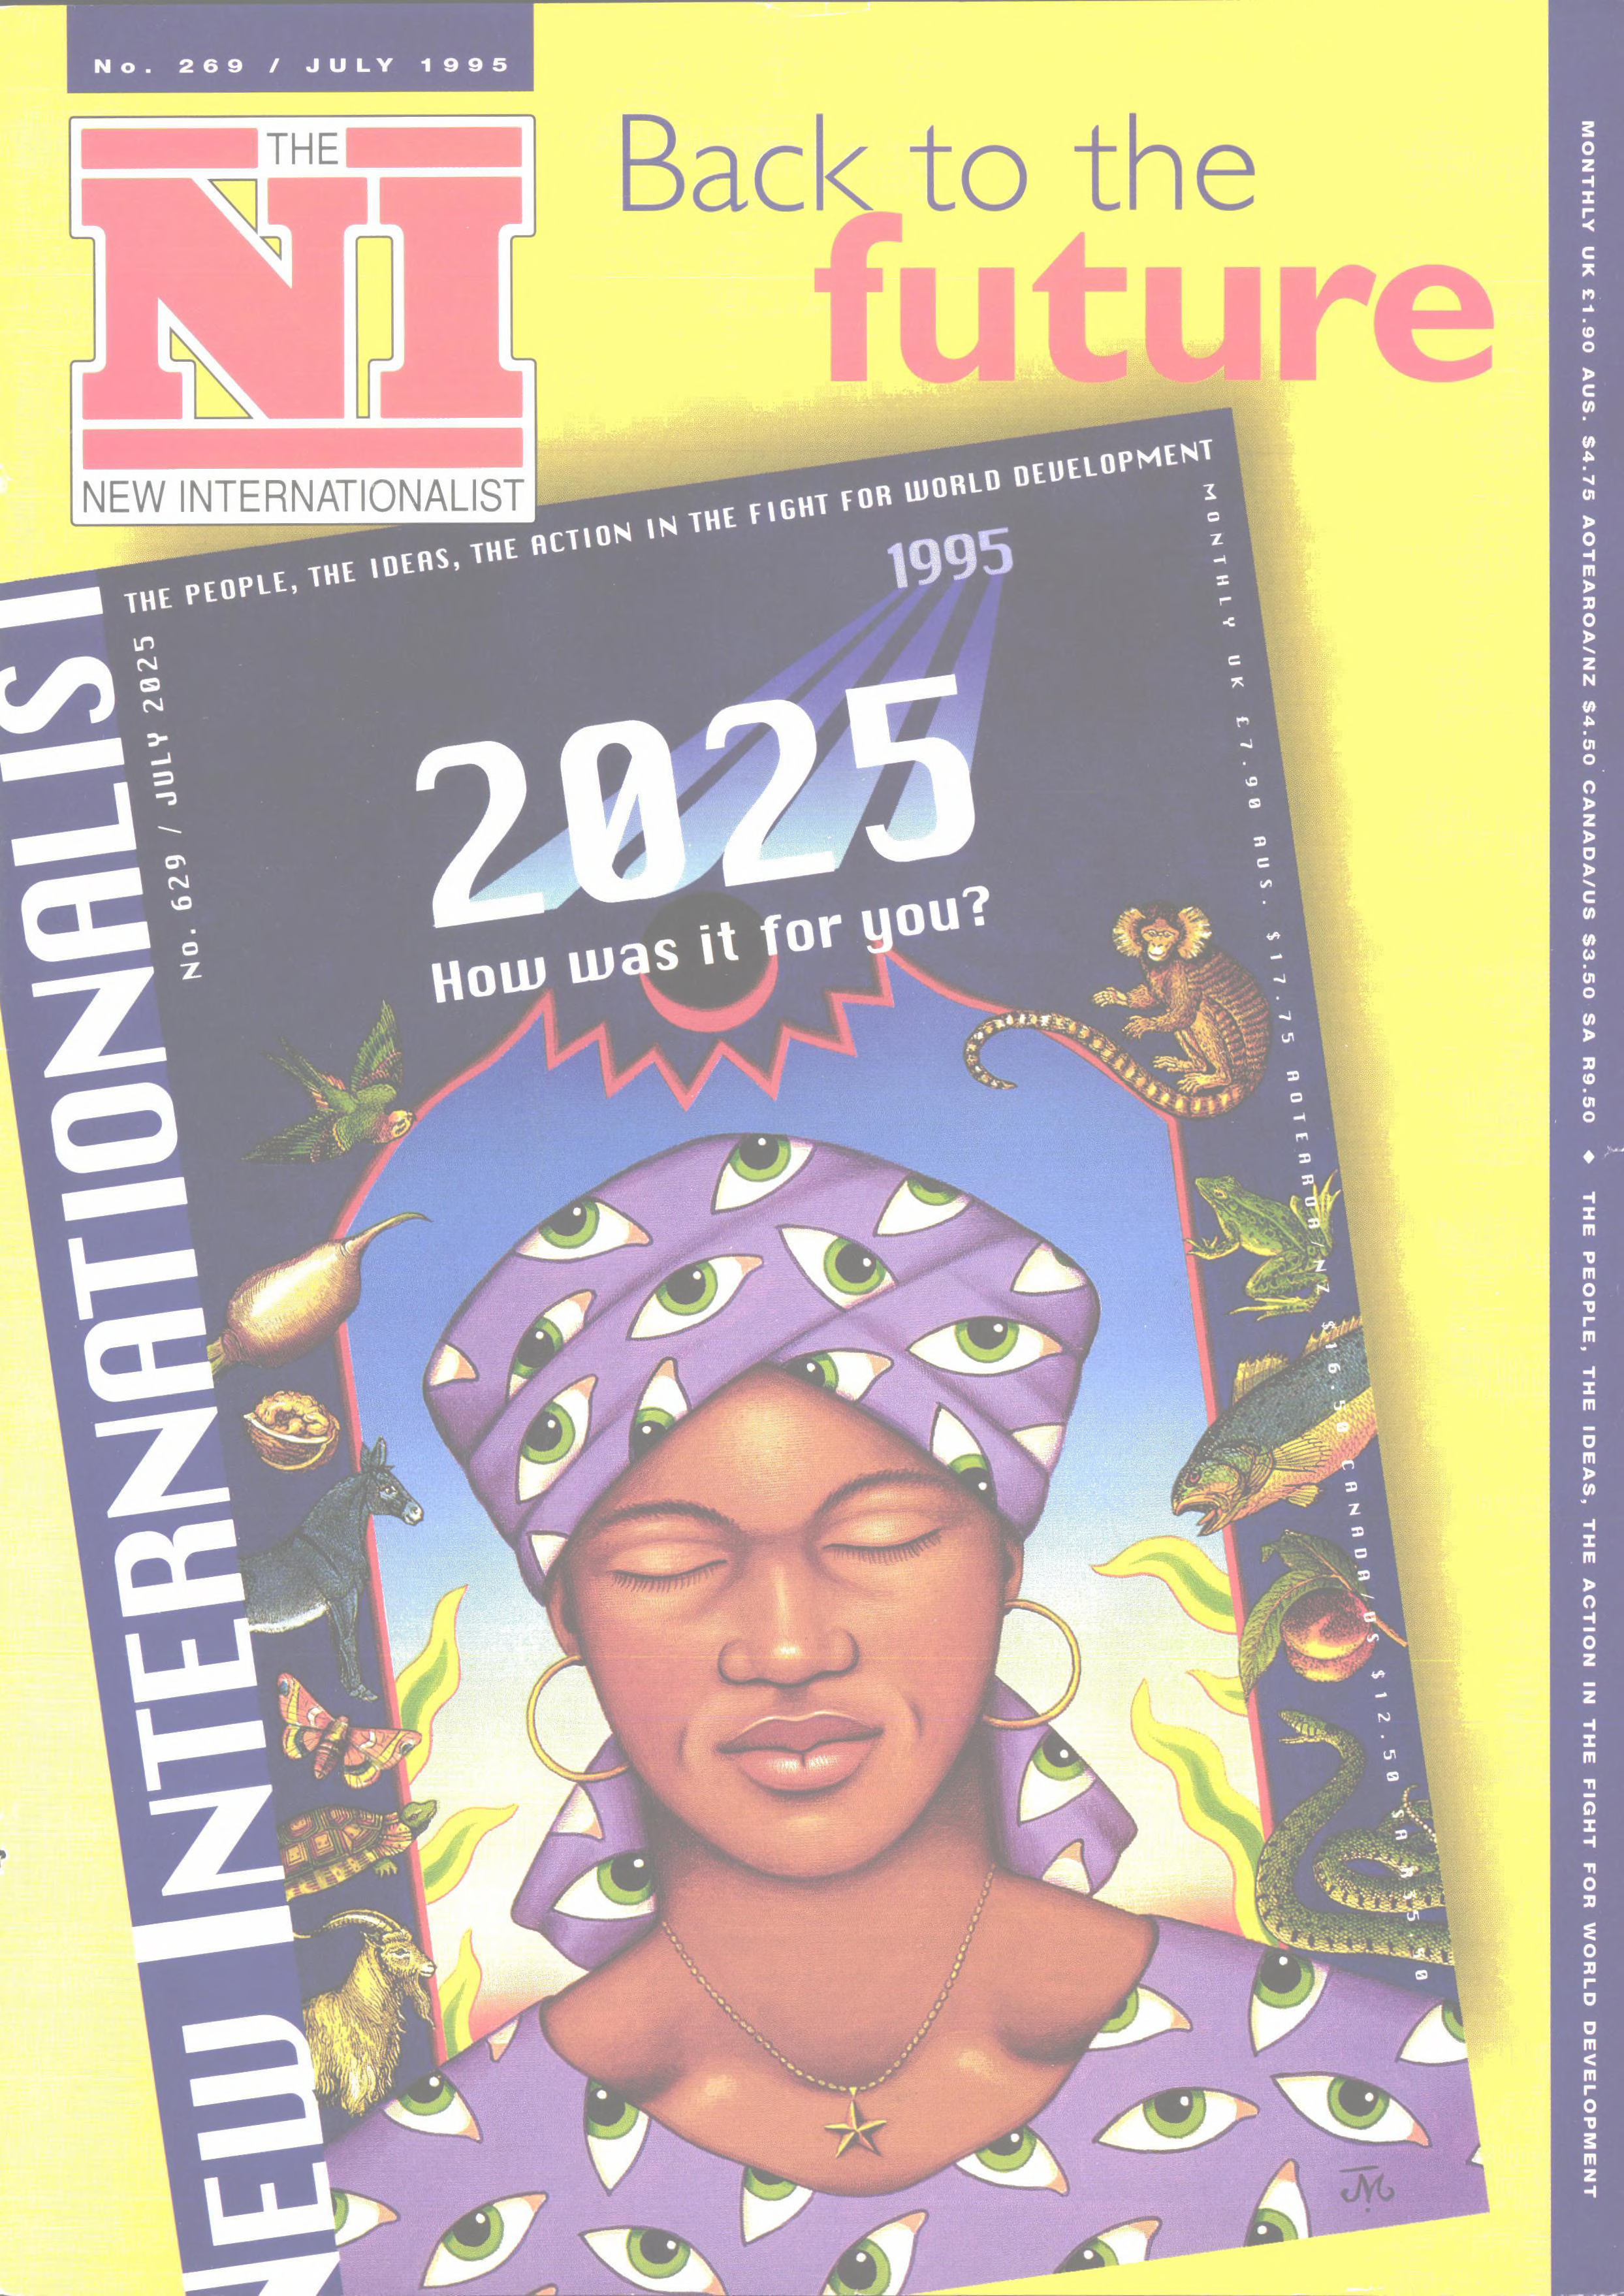 New Internationalist issue 269 magazine cover